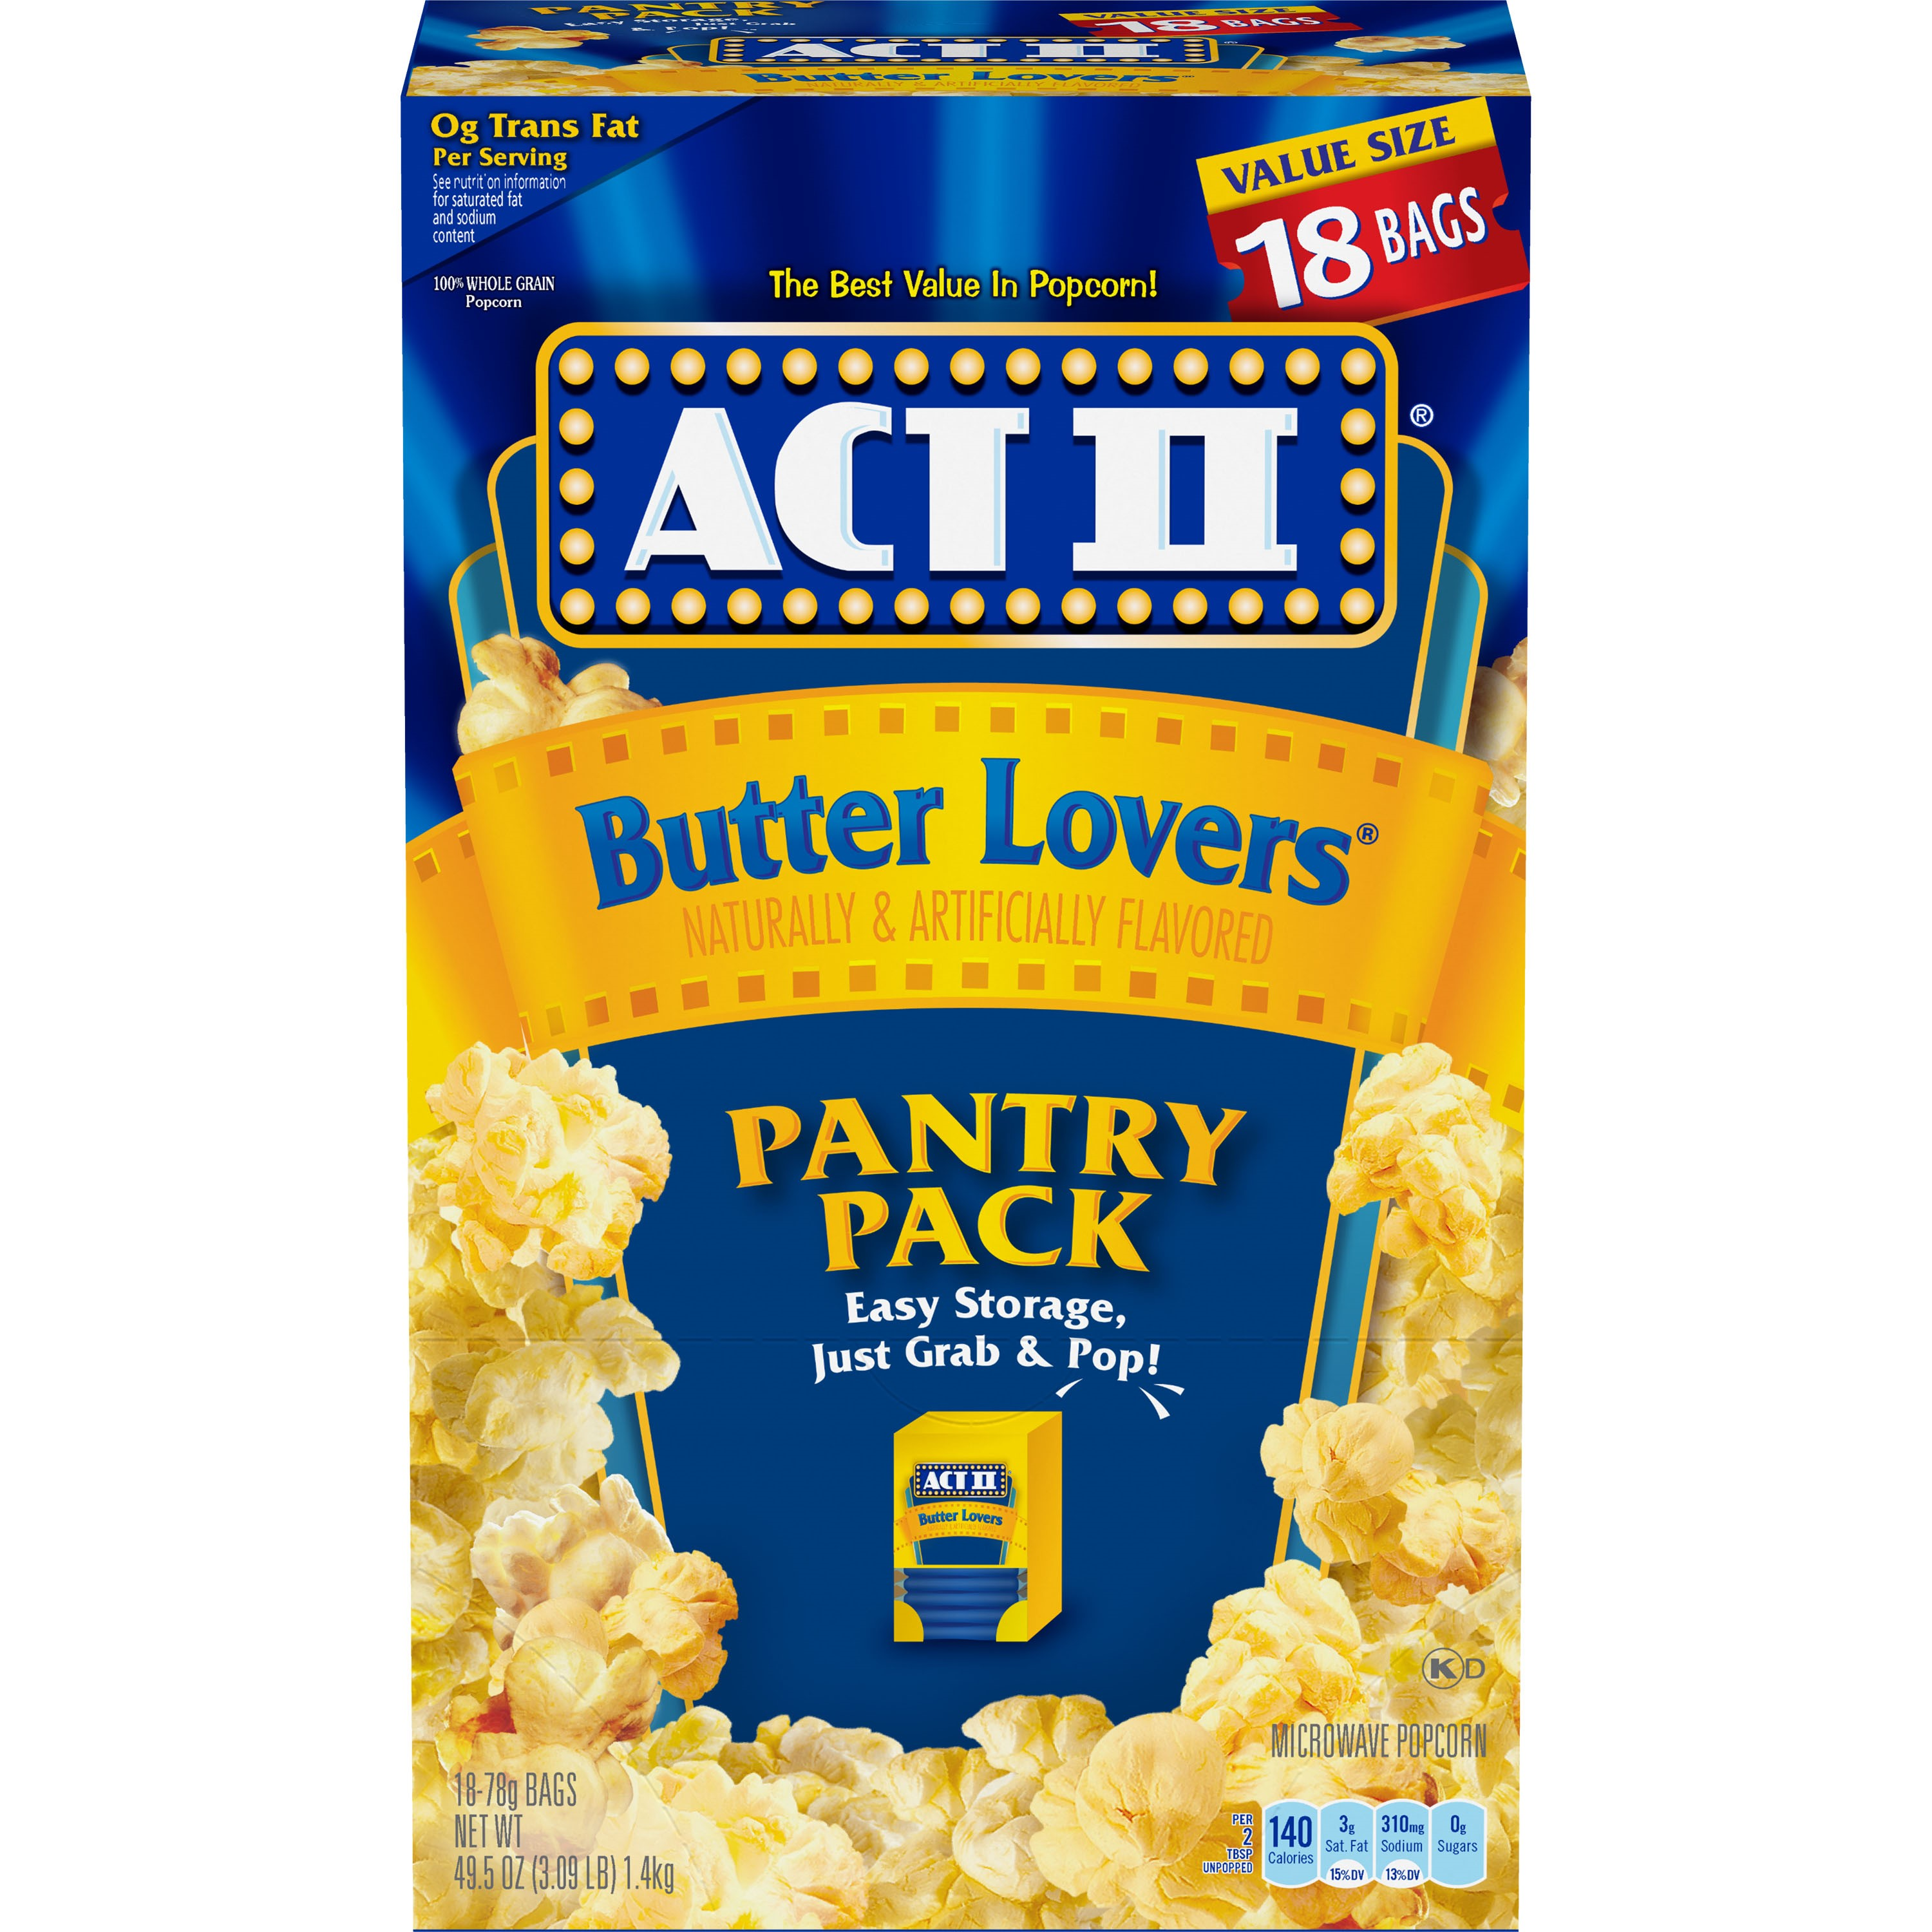 (4 Pack) ACT II Microwave Popcorn, Butter Lovers, Pantry Pack, 2.75 Oz, 18 Ct